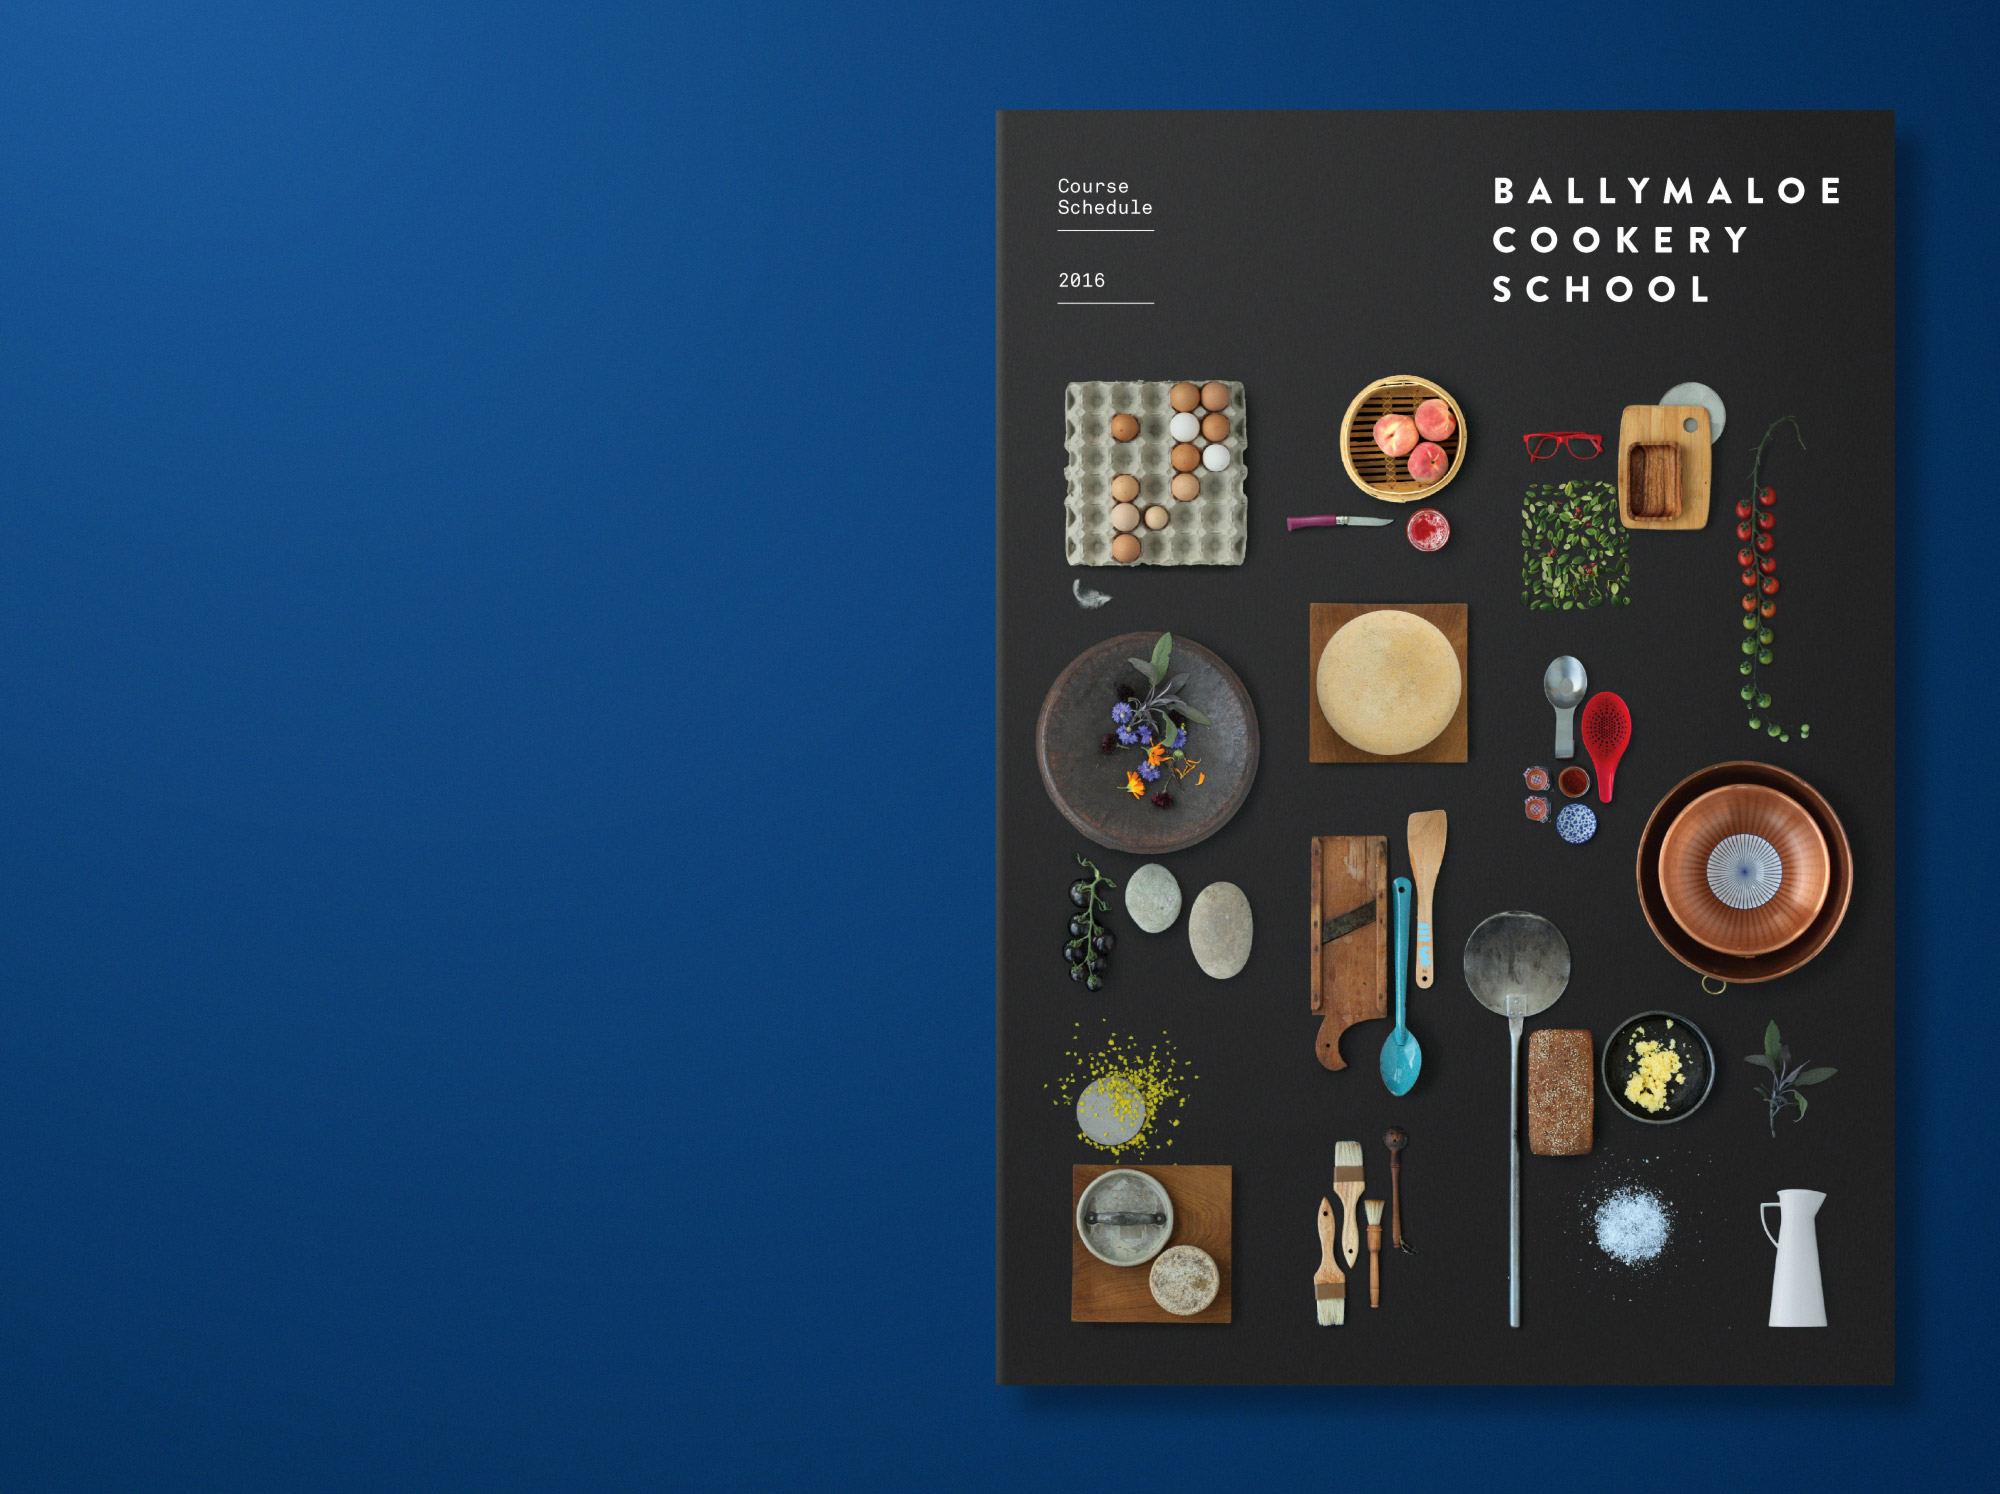 Cover image: Ballymaloe Cookery School 2015/2016